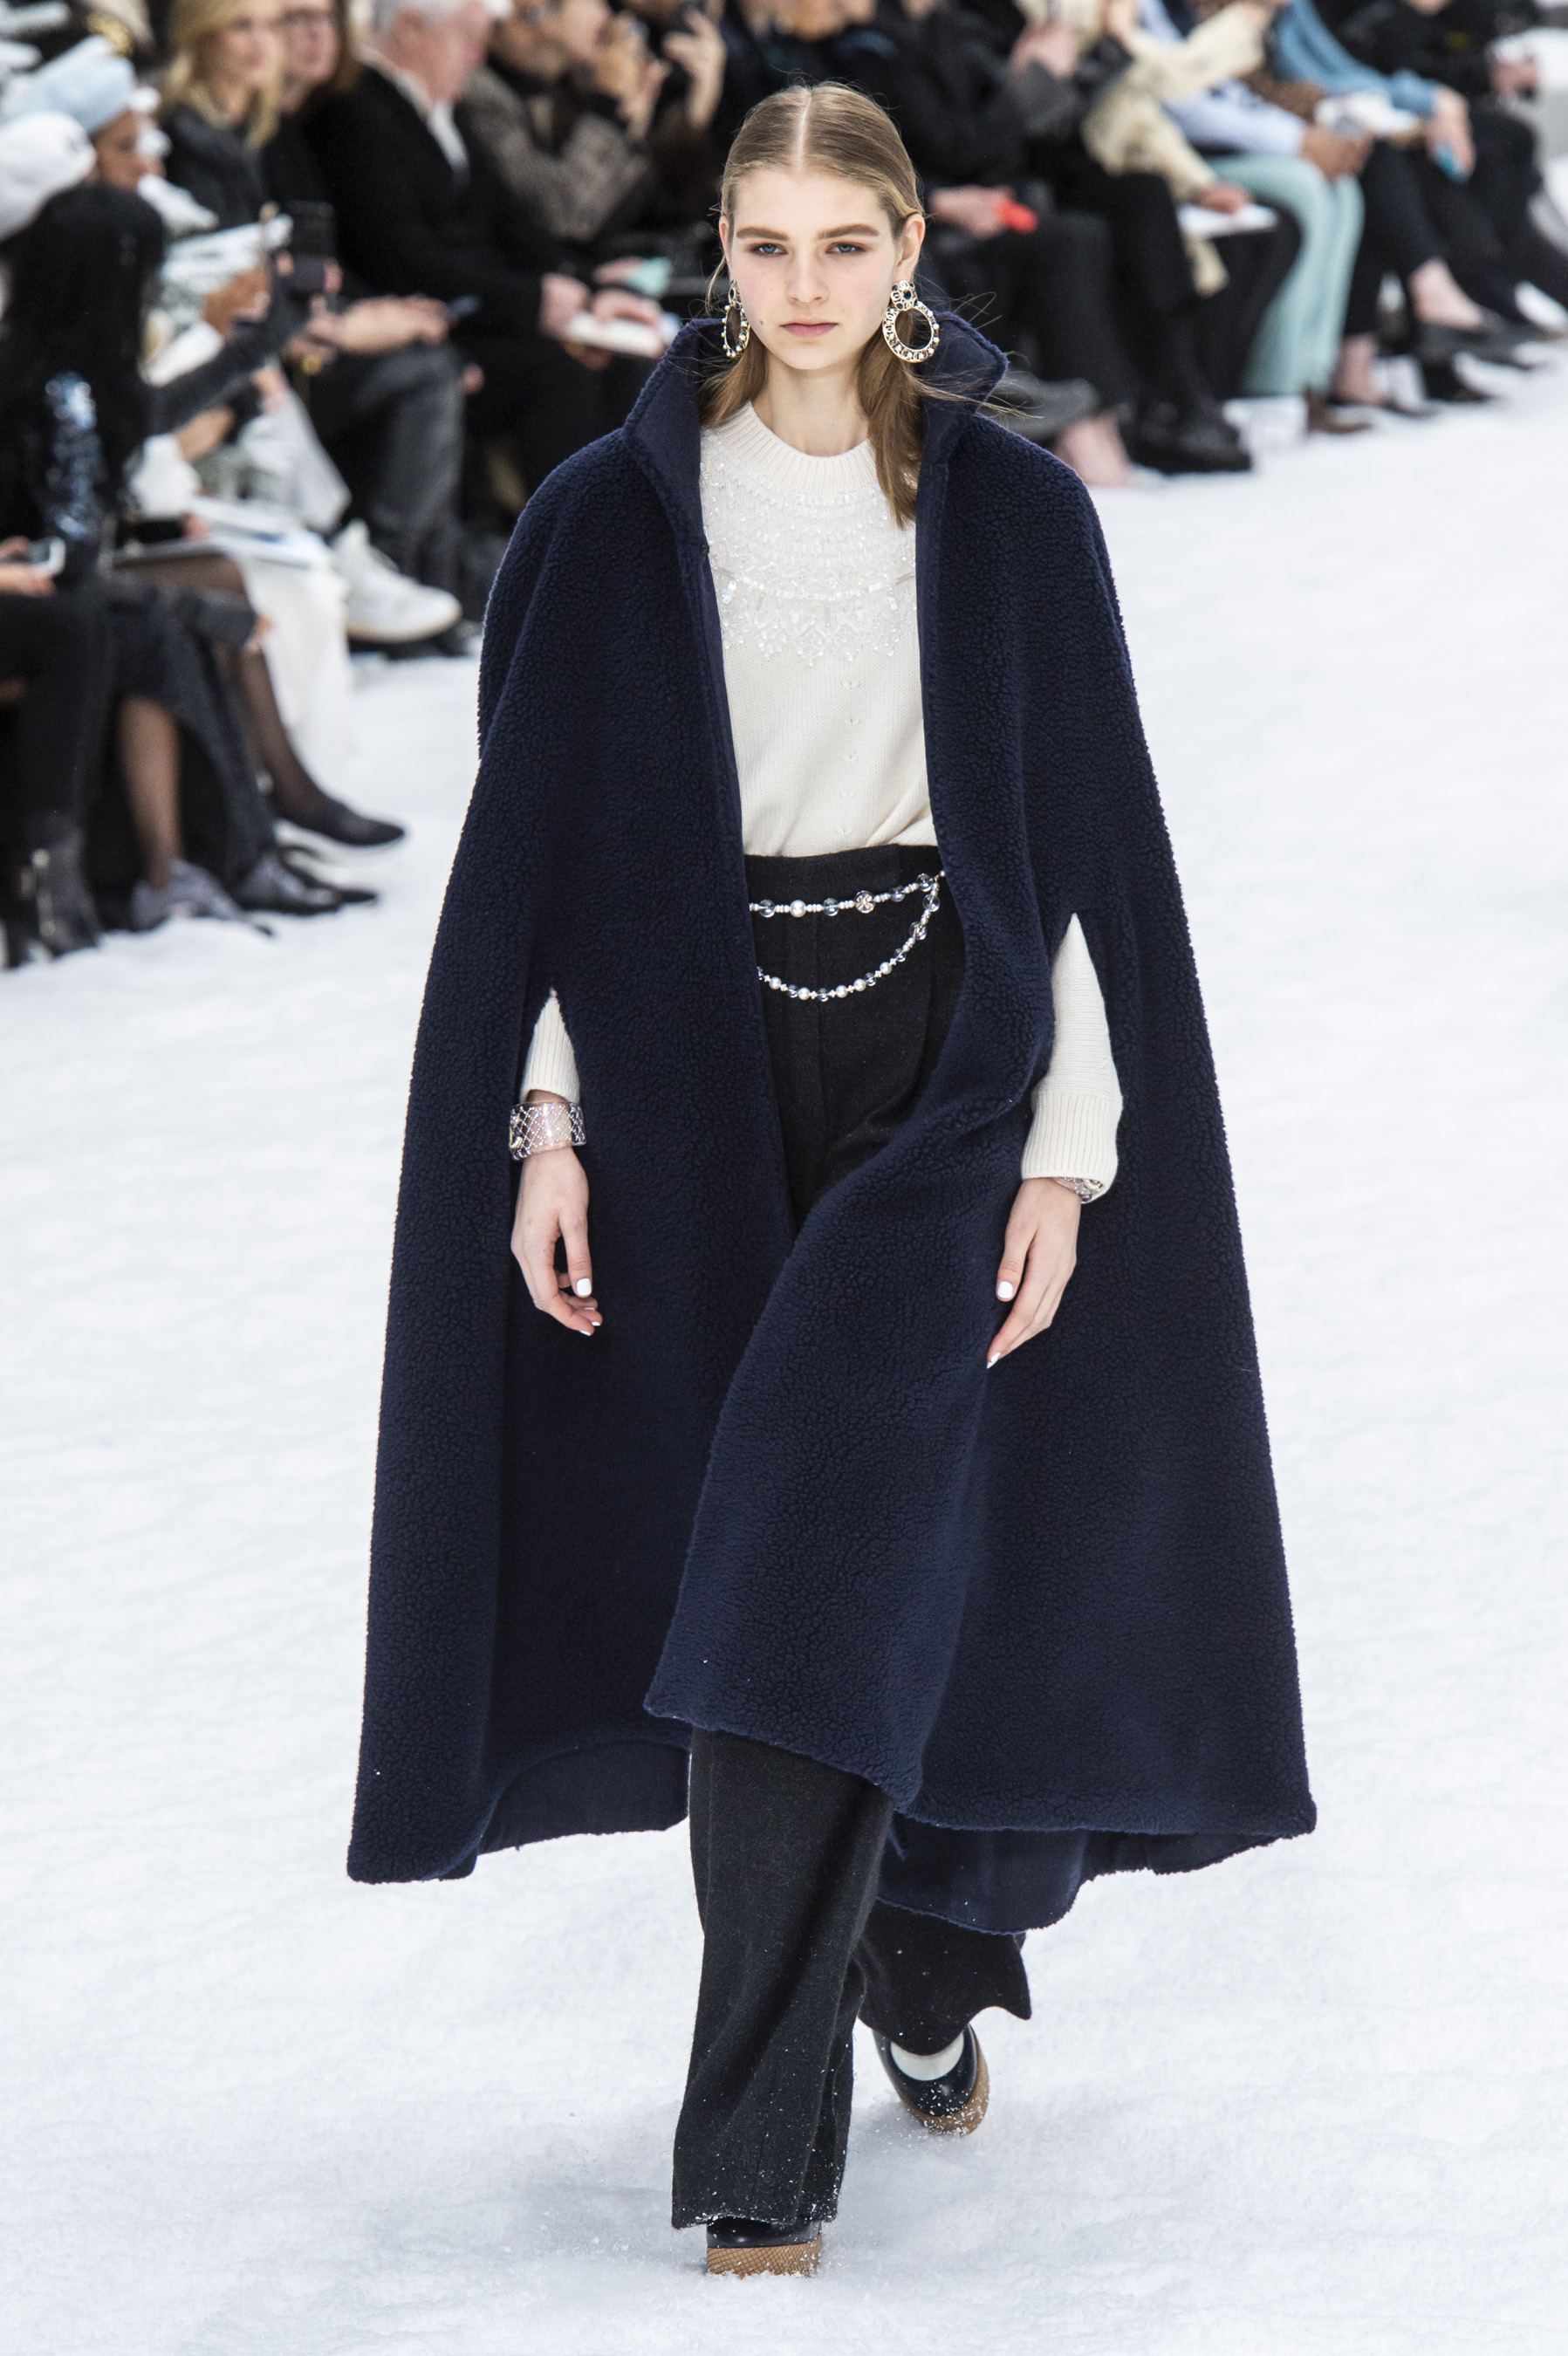 Capes Fall 2019 Womenswear Fashion Trend